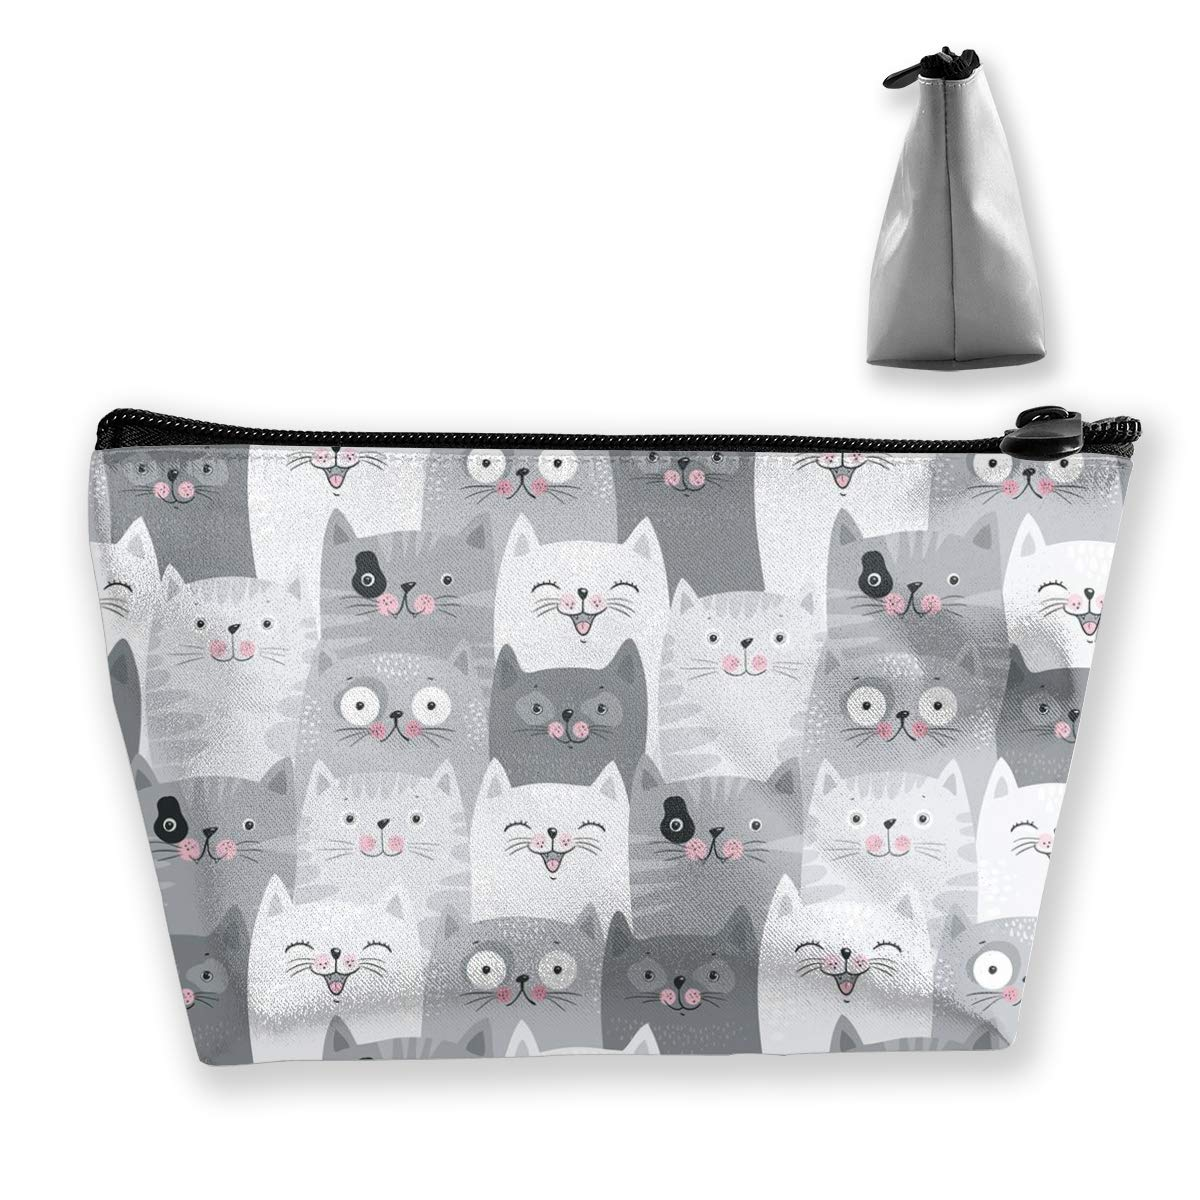 Cute Cartoon Cats Roomy Cosmetic Bag Waterproof Travel Makeup Toiletry Pouch Small Accessories Organizer with Zipper for Teens Girls Purse